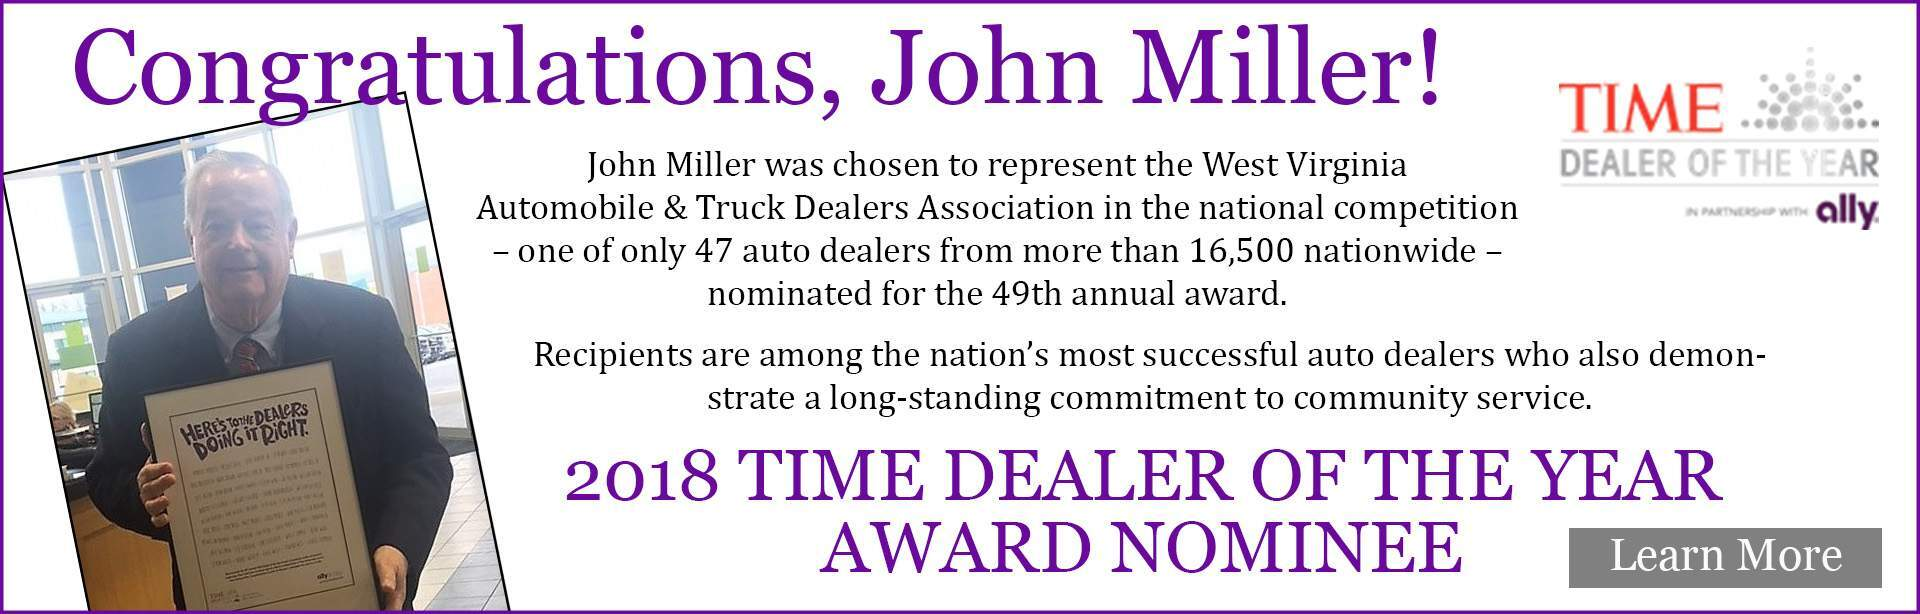 TIME Dealer of the Year Award